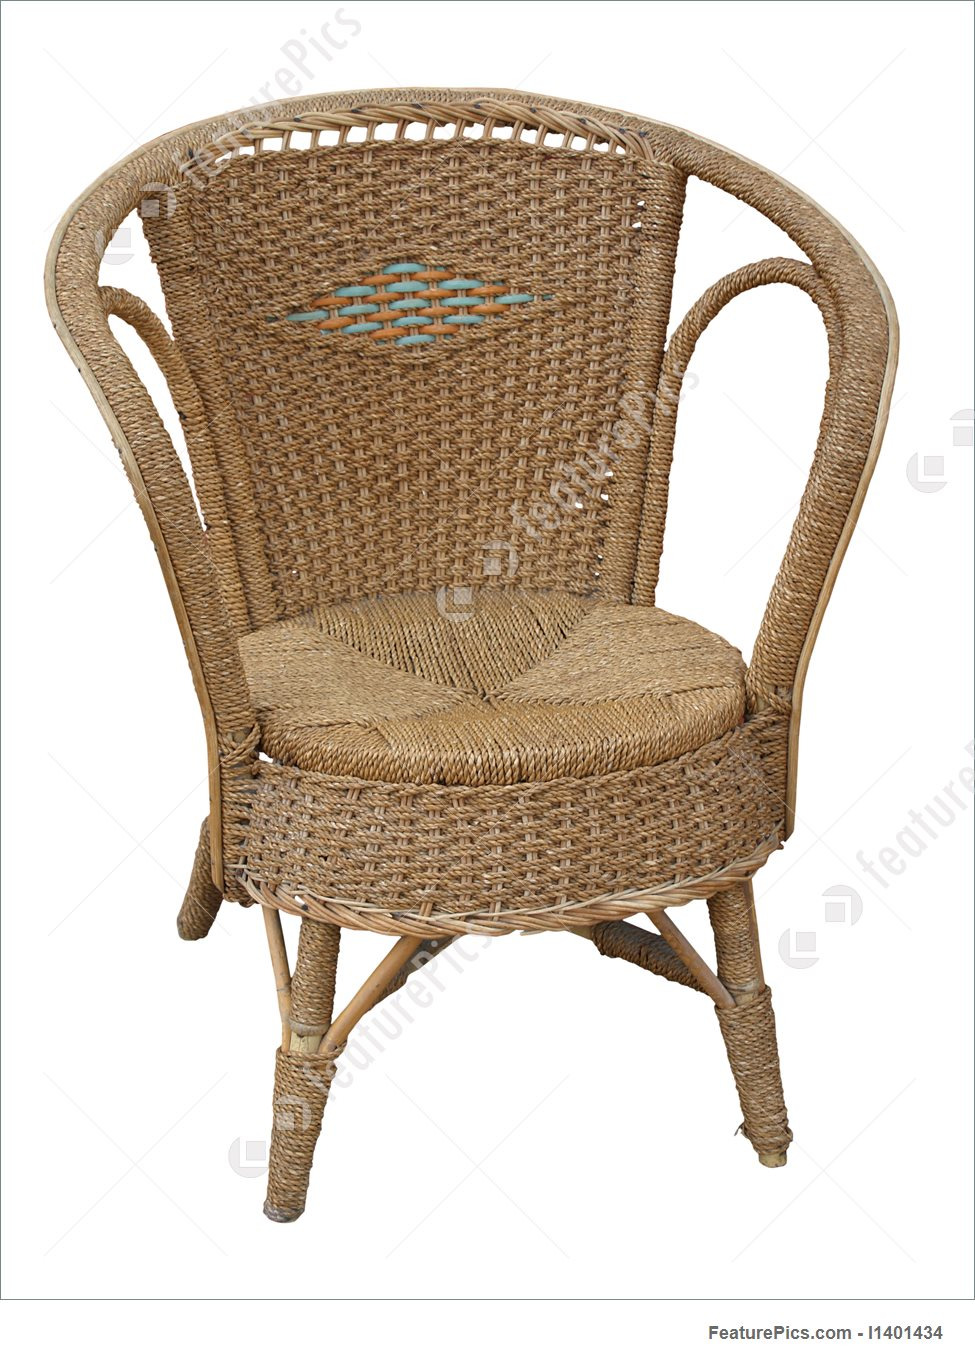 Antique Wicker Chair Pics x